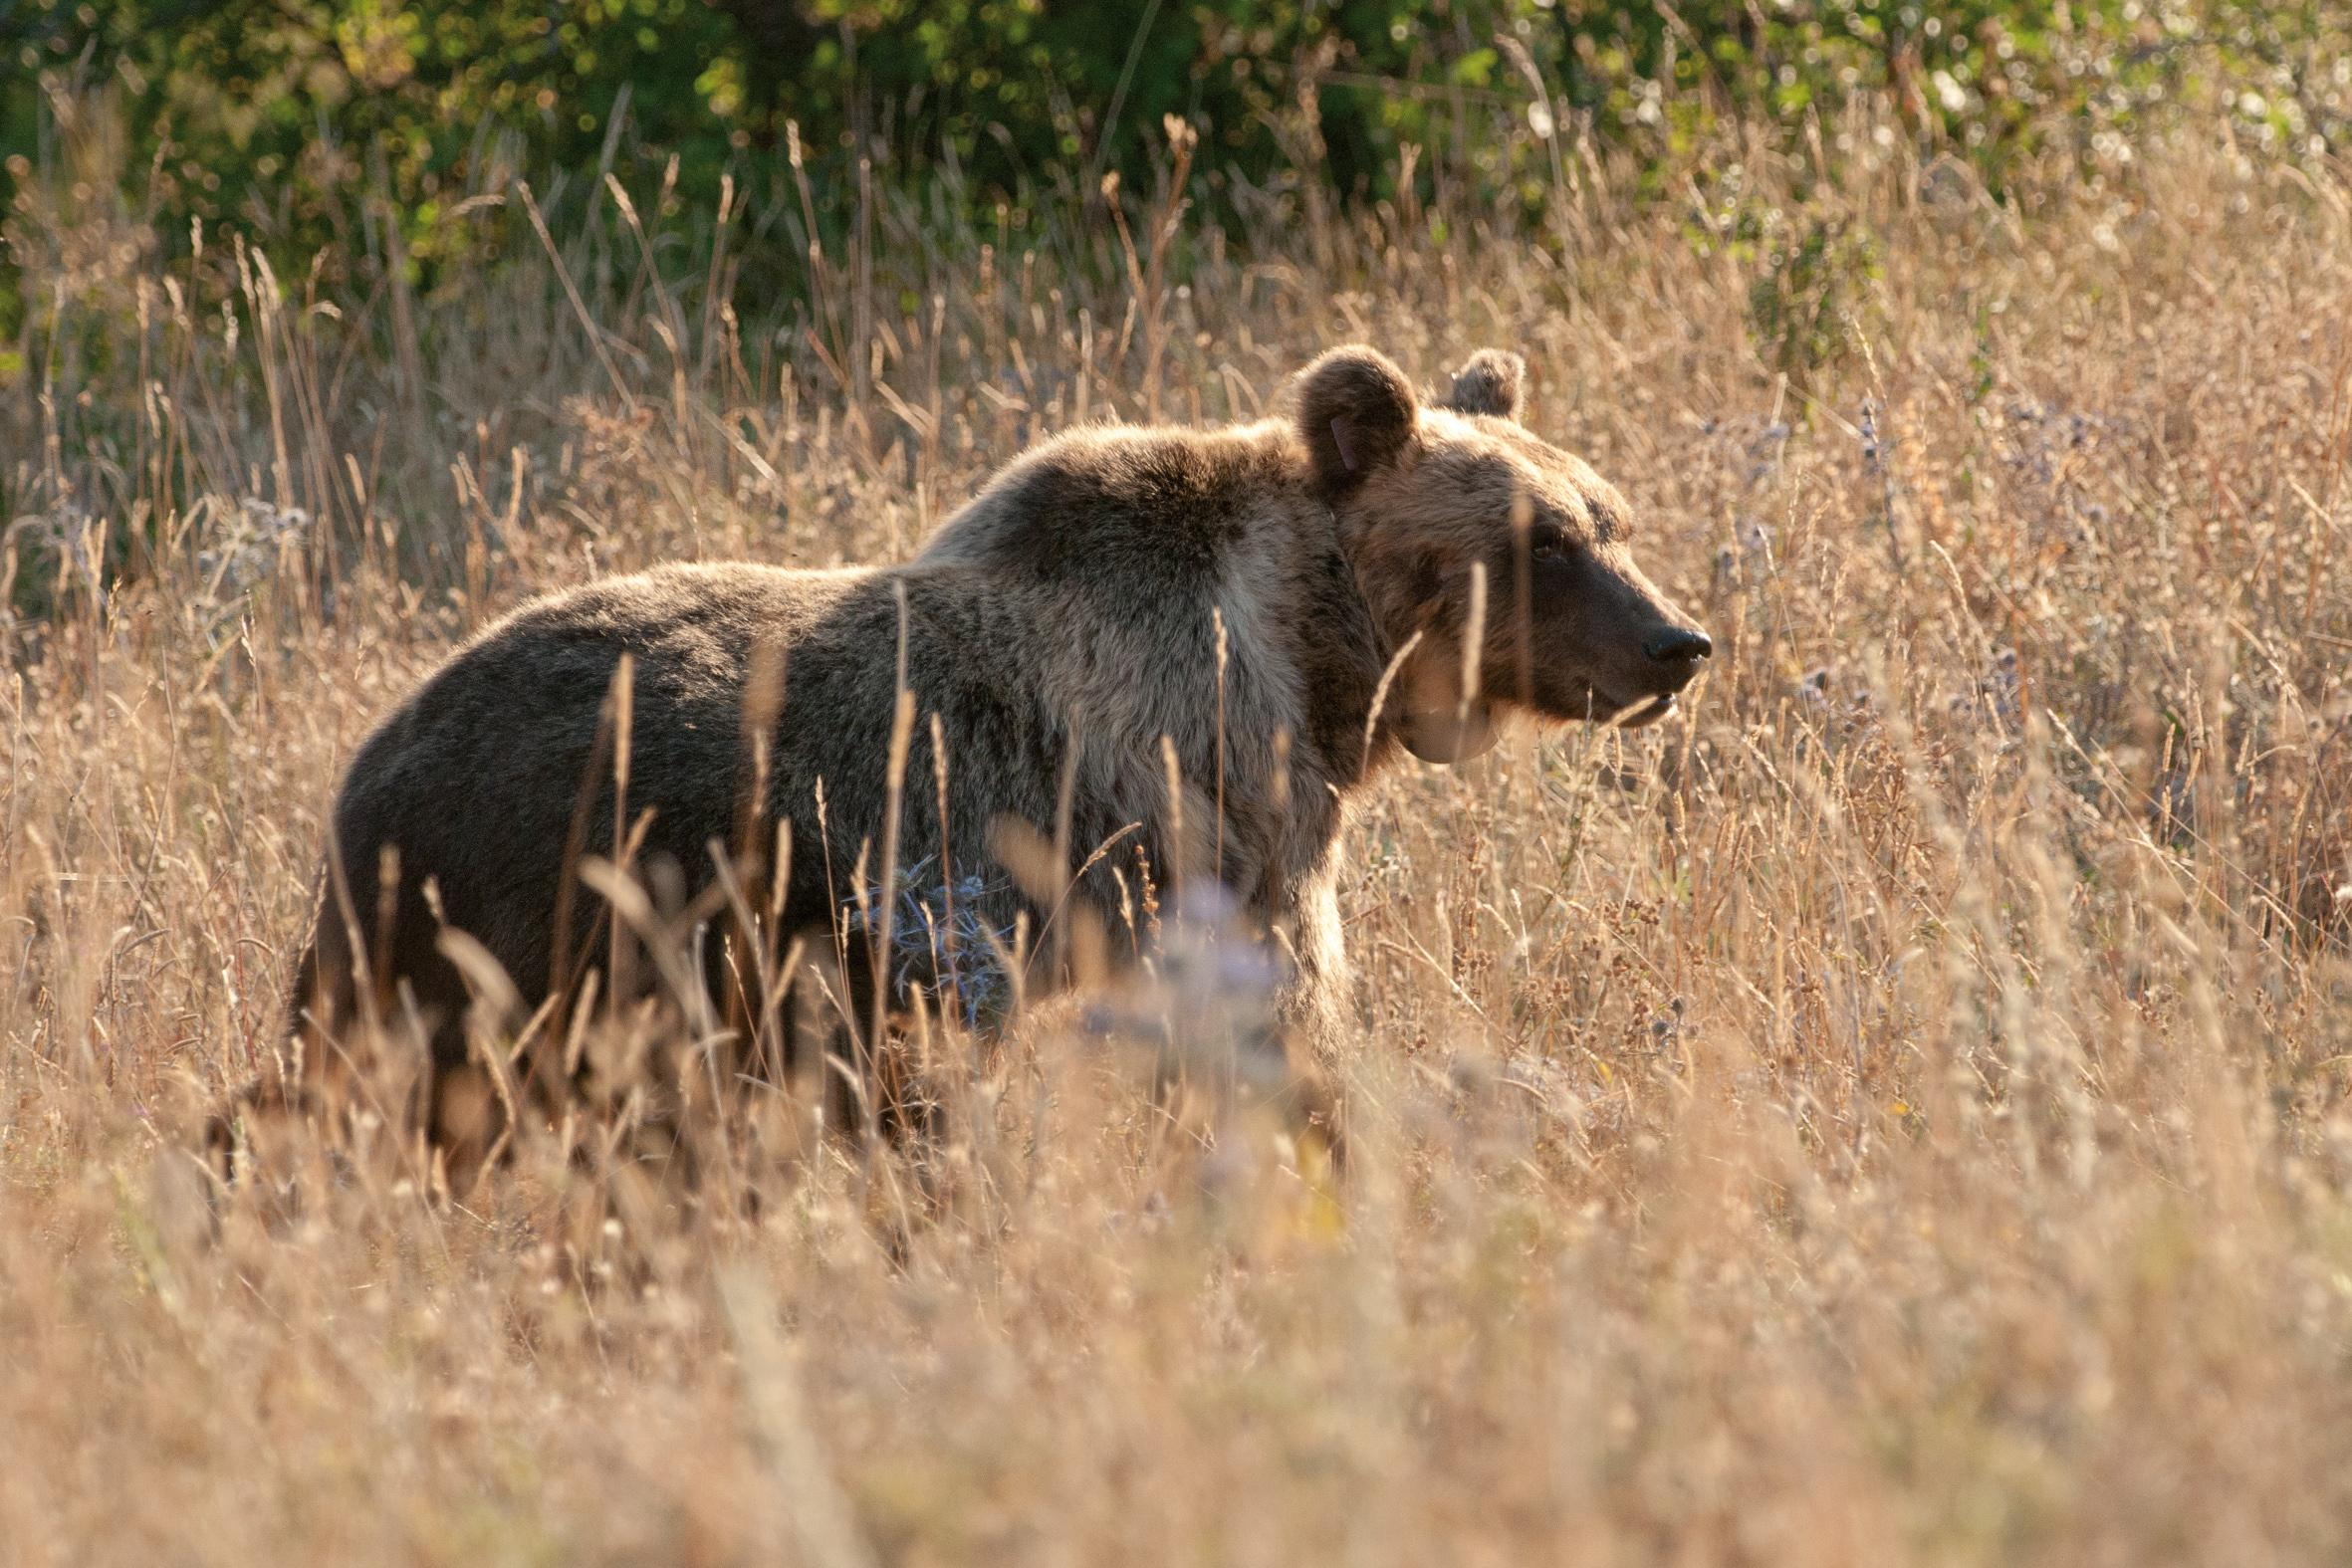 The search for Europe's most endangered bear